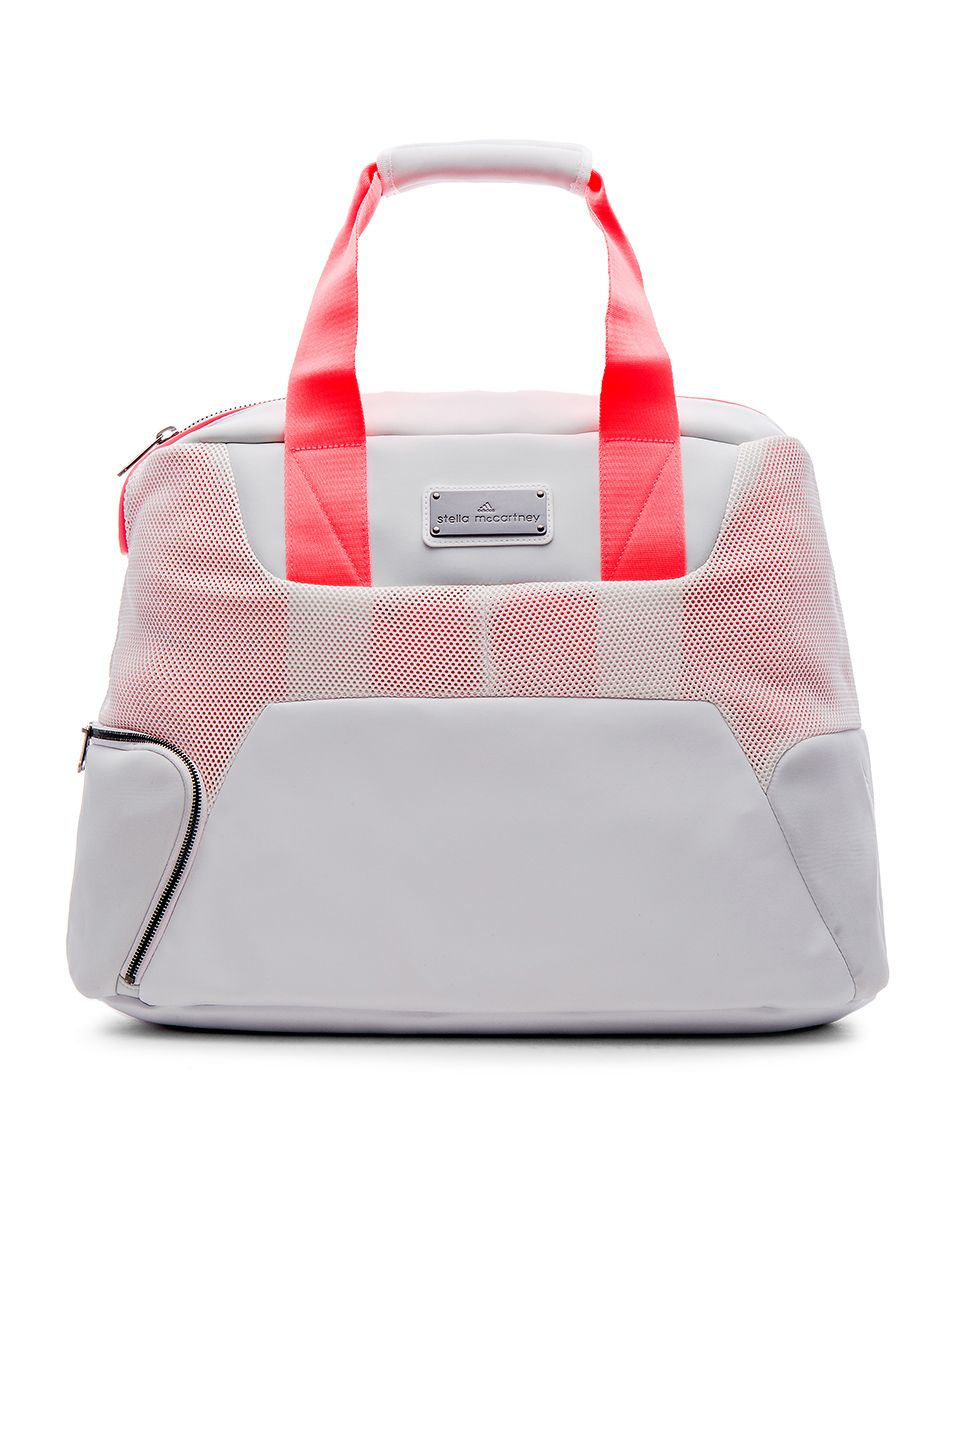 Escuela de posgrado Pobreza extrema estéreo  Tennis Bag In White & Flash Red | 가방, 골프 가방, 골프